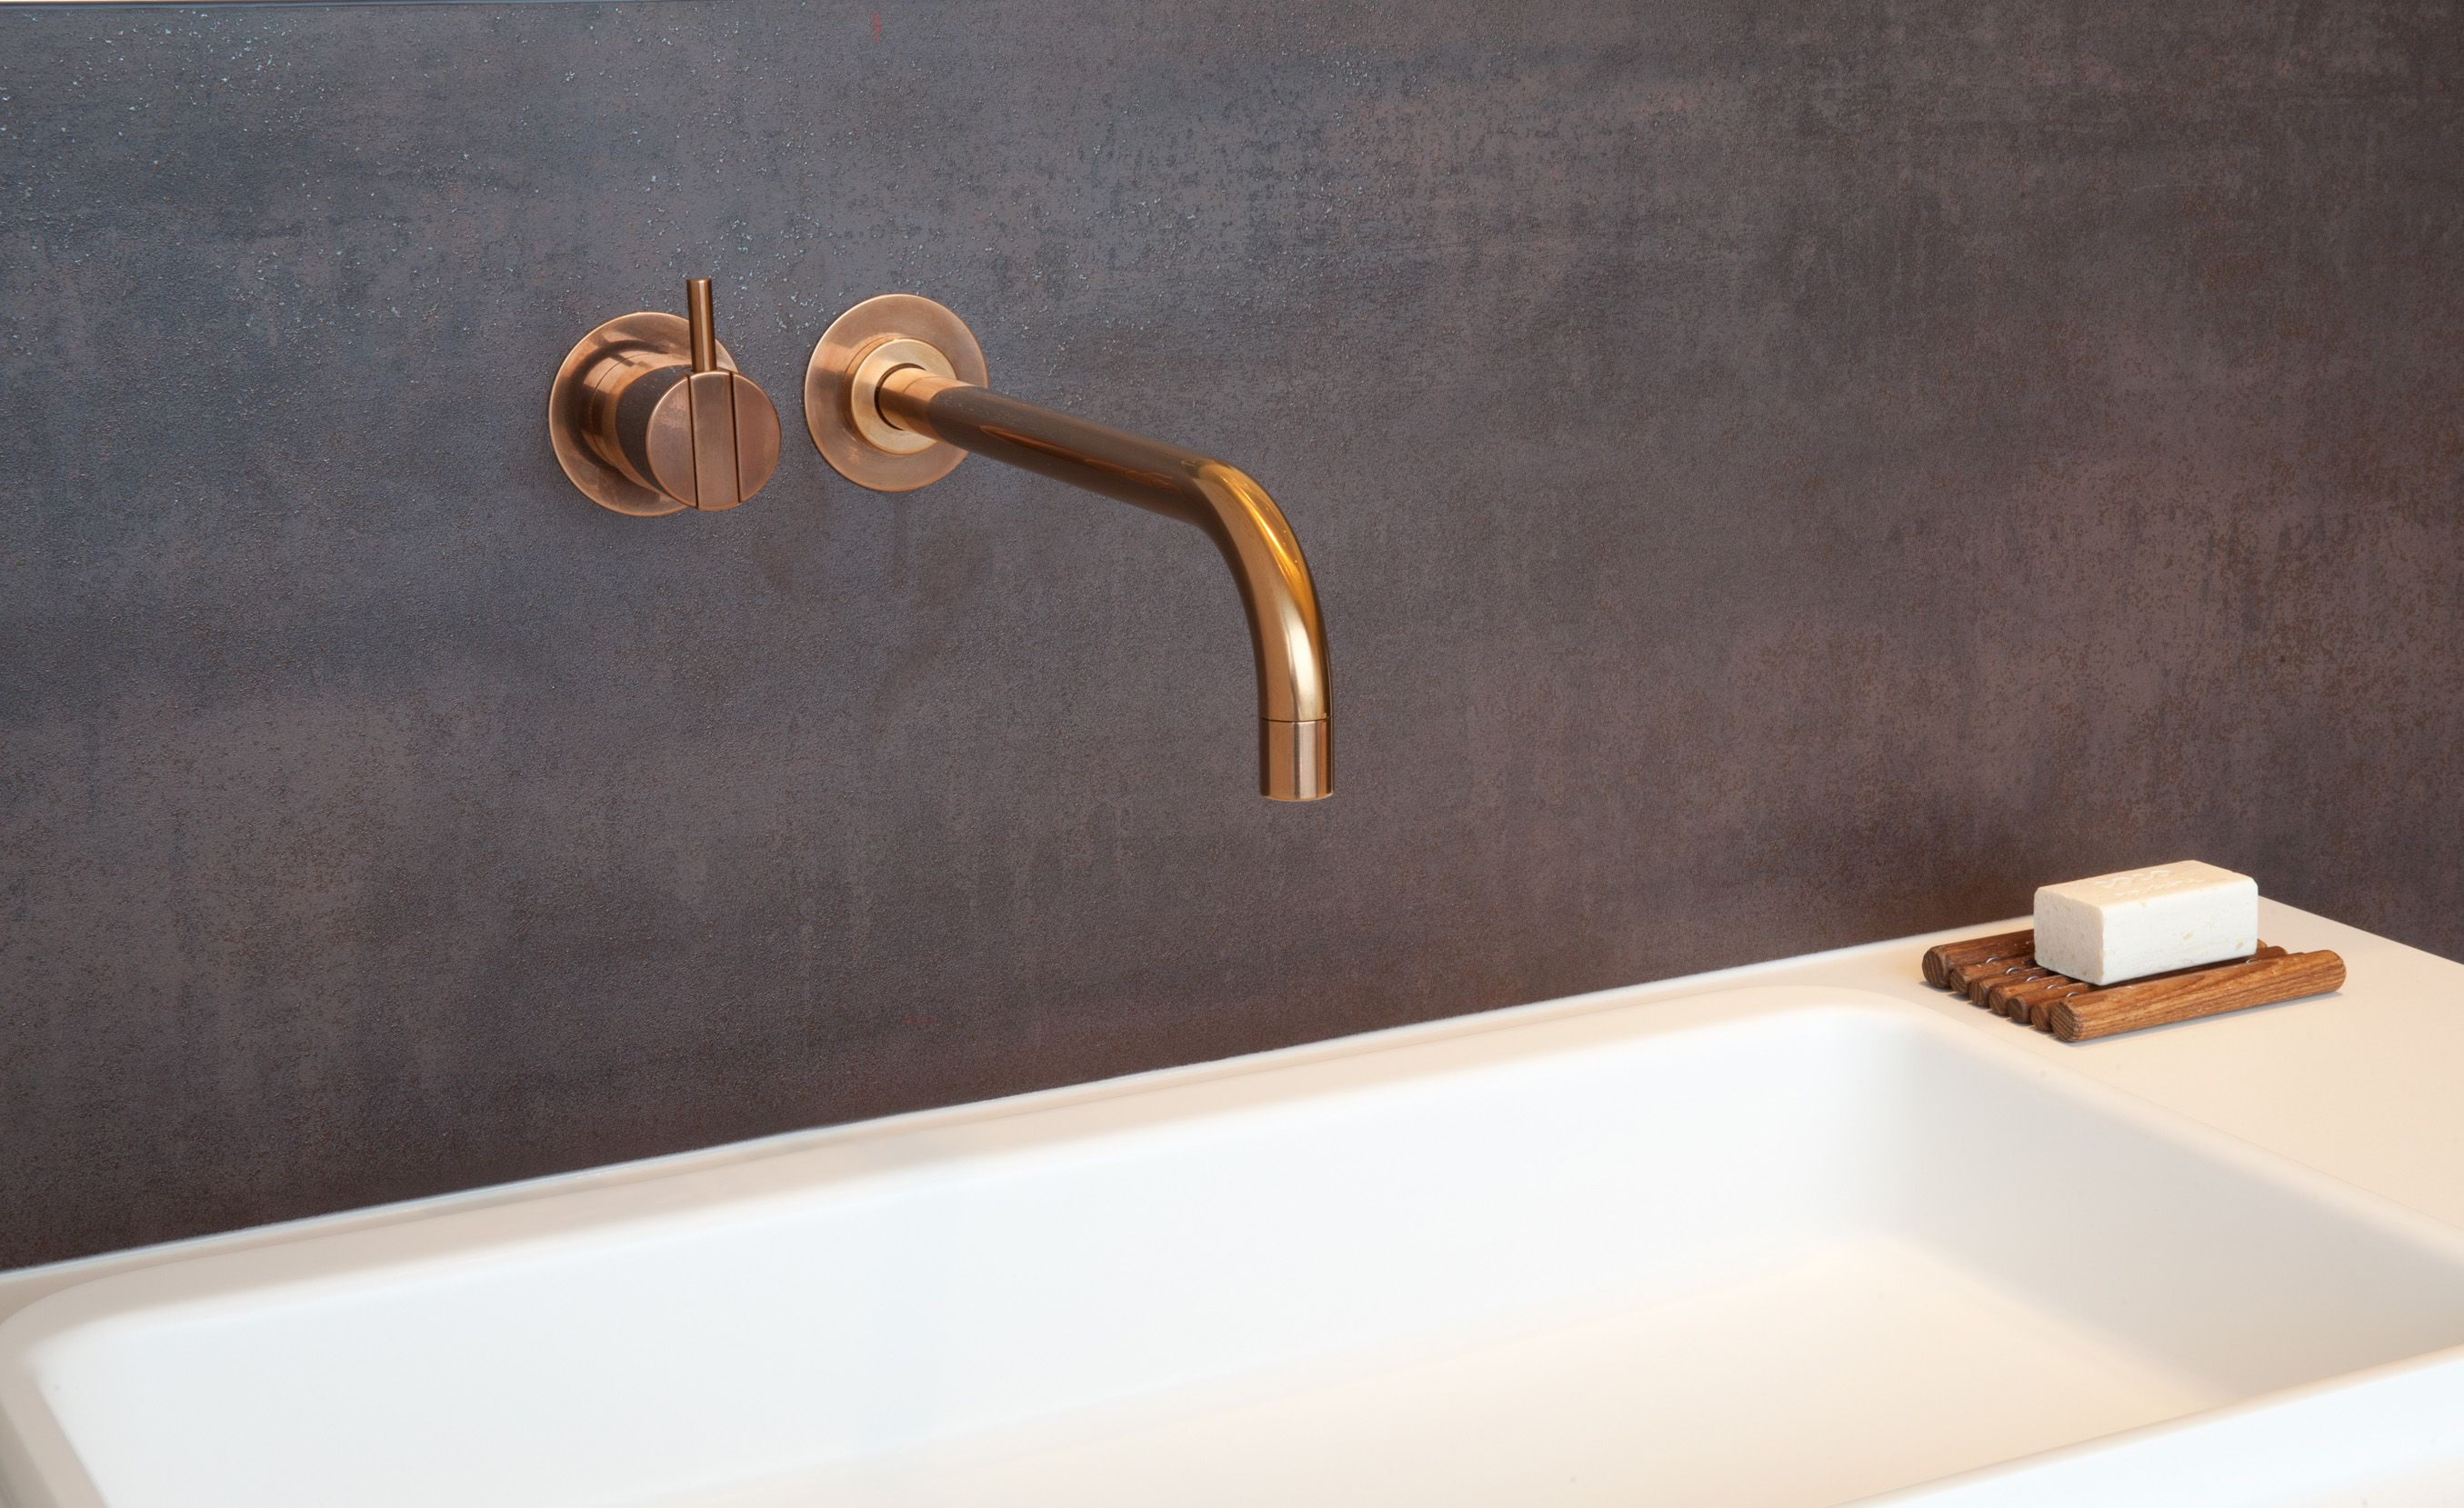 Copper Taps Copper Tap Design By Vola Design 43 Decoration